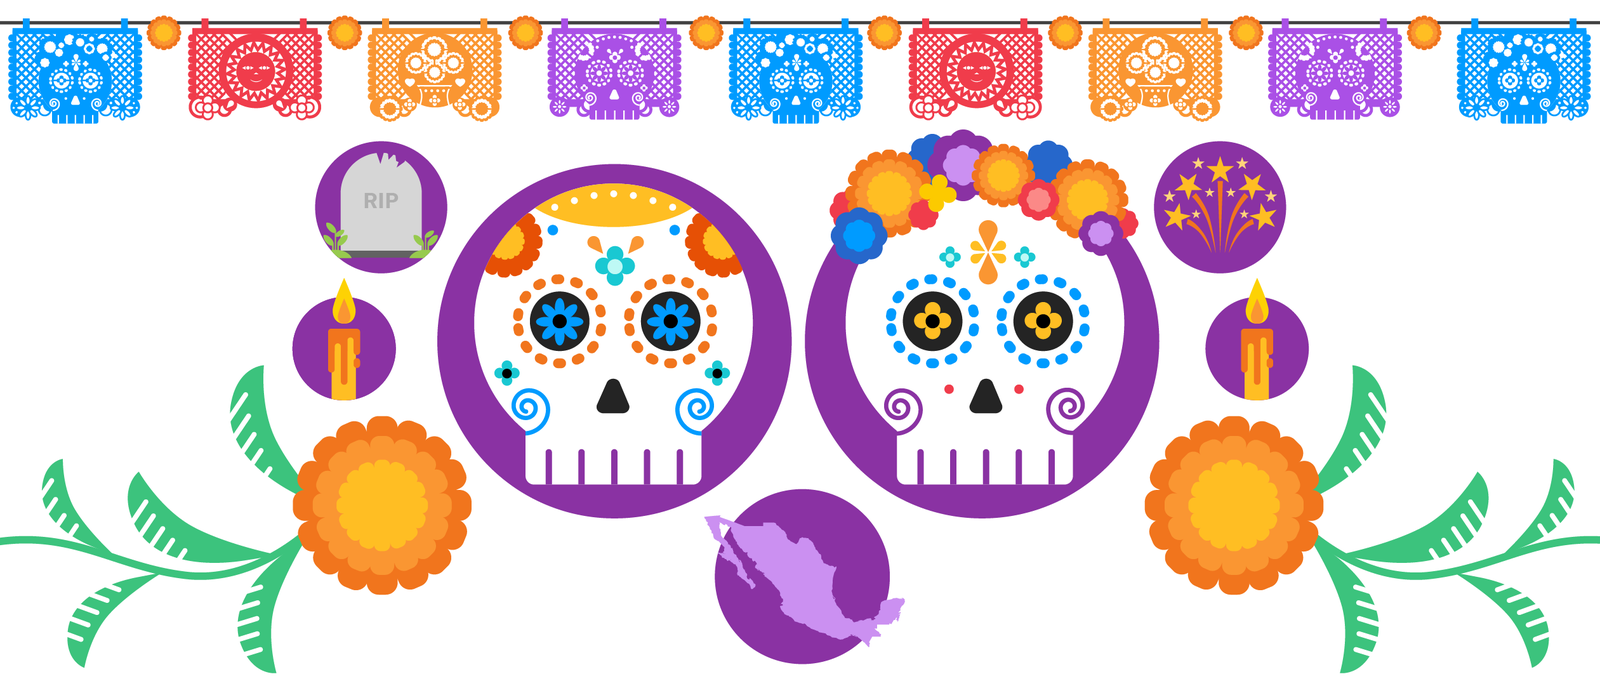 Day of the Dead: A visual guide to remembering loved ones in.